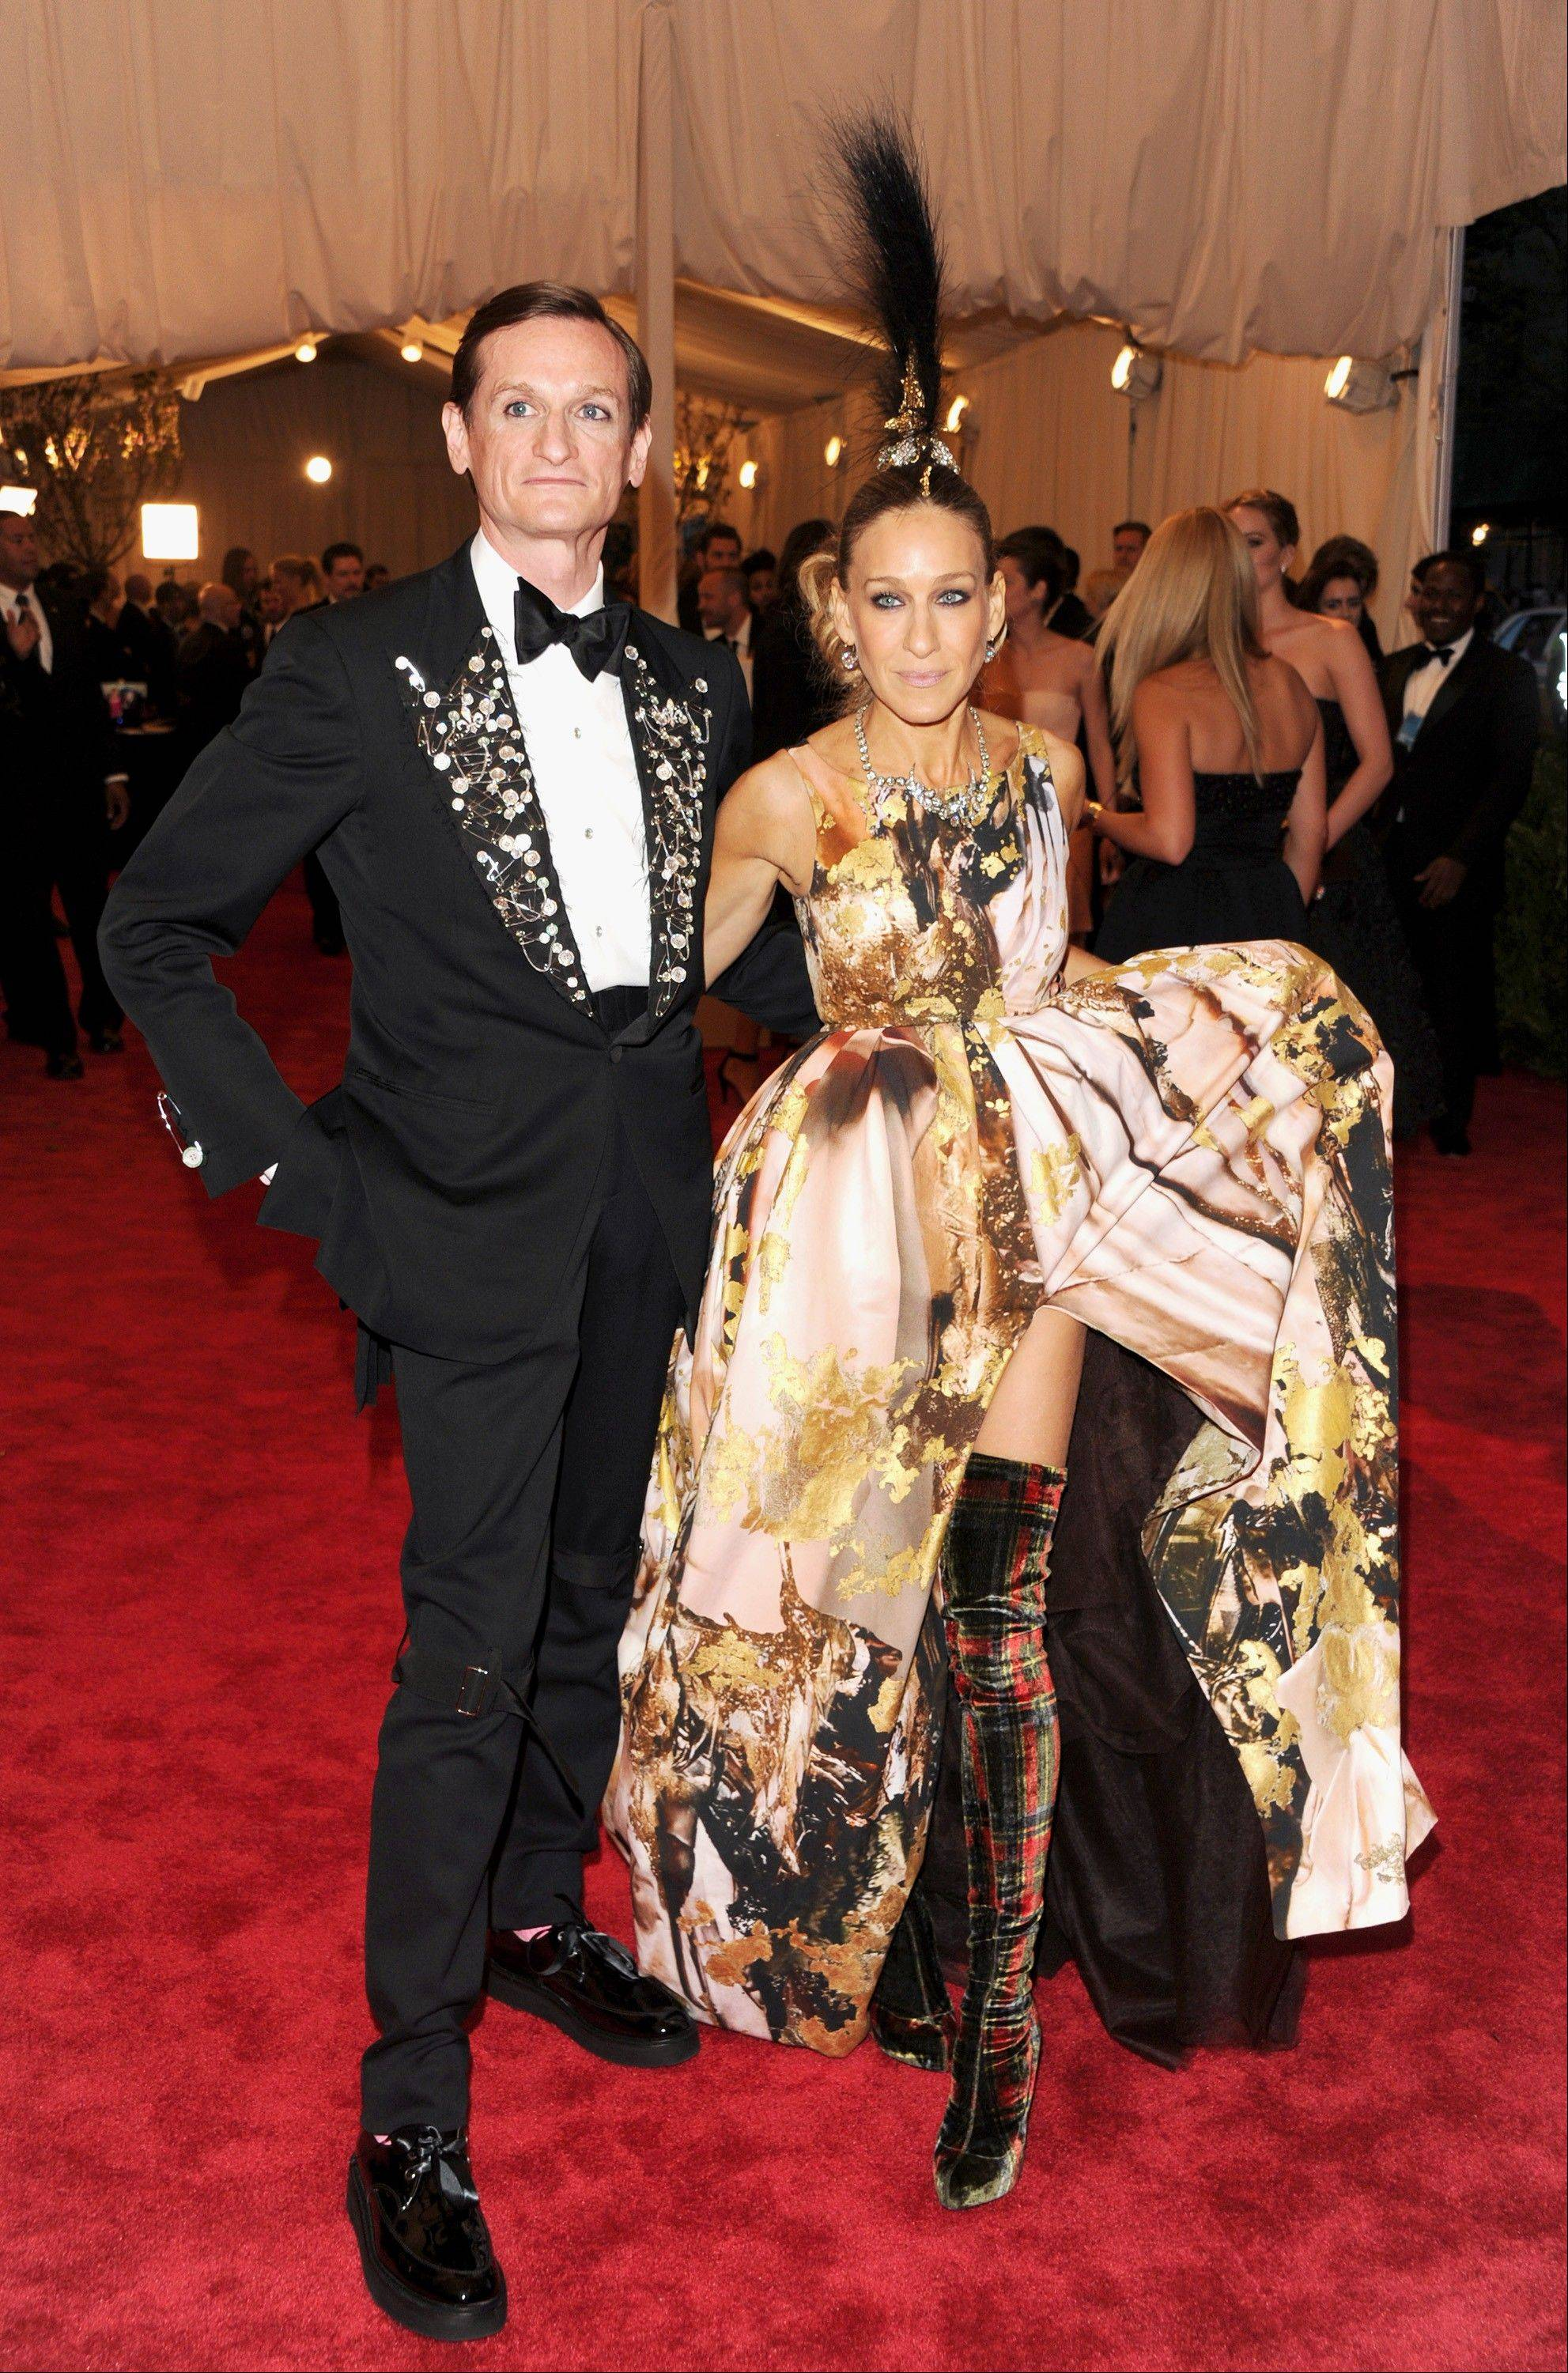 "This May 6, 2013 file photo shows Hamish Bowles, left, and Sarah Jessica Parker at The Metropolitan Museum of Art Costume Institute gala benefit, ""Punk: Chaos to Couture"", in New York. The Metropolitan Museum of Art hosted a new Costume Institute exhibit, ""Punk: Chaos to Culture,"" celebrating a movement that embraced anarchy in the 1970s."